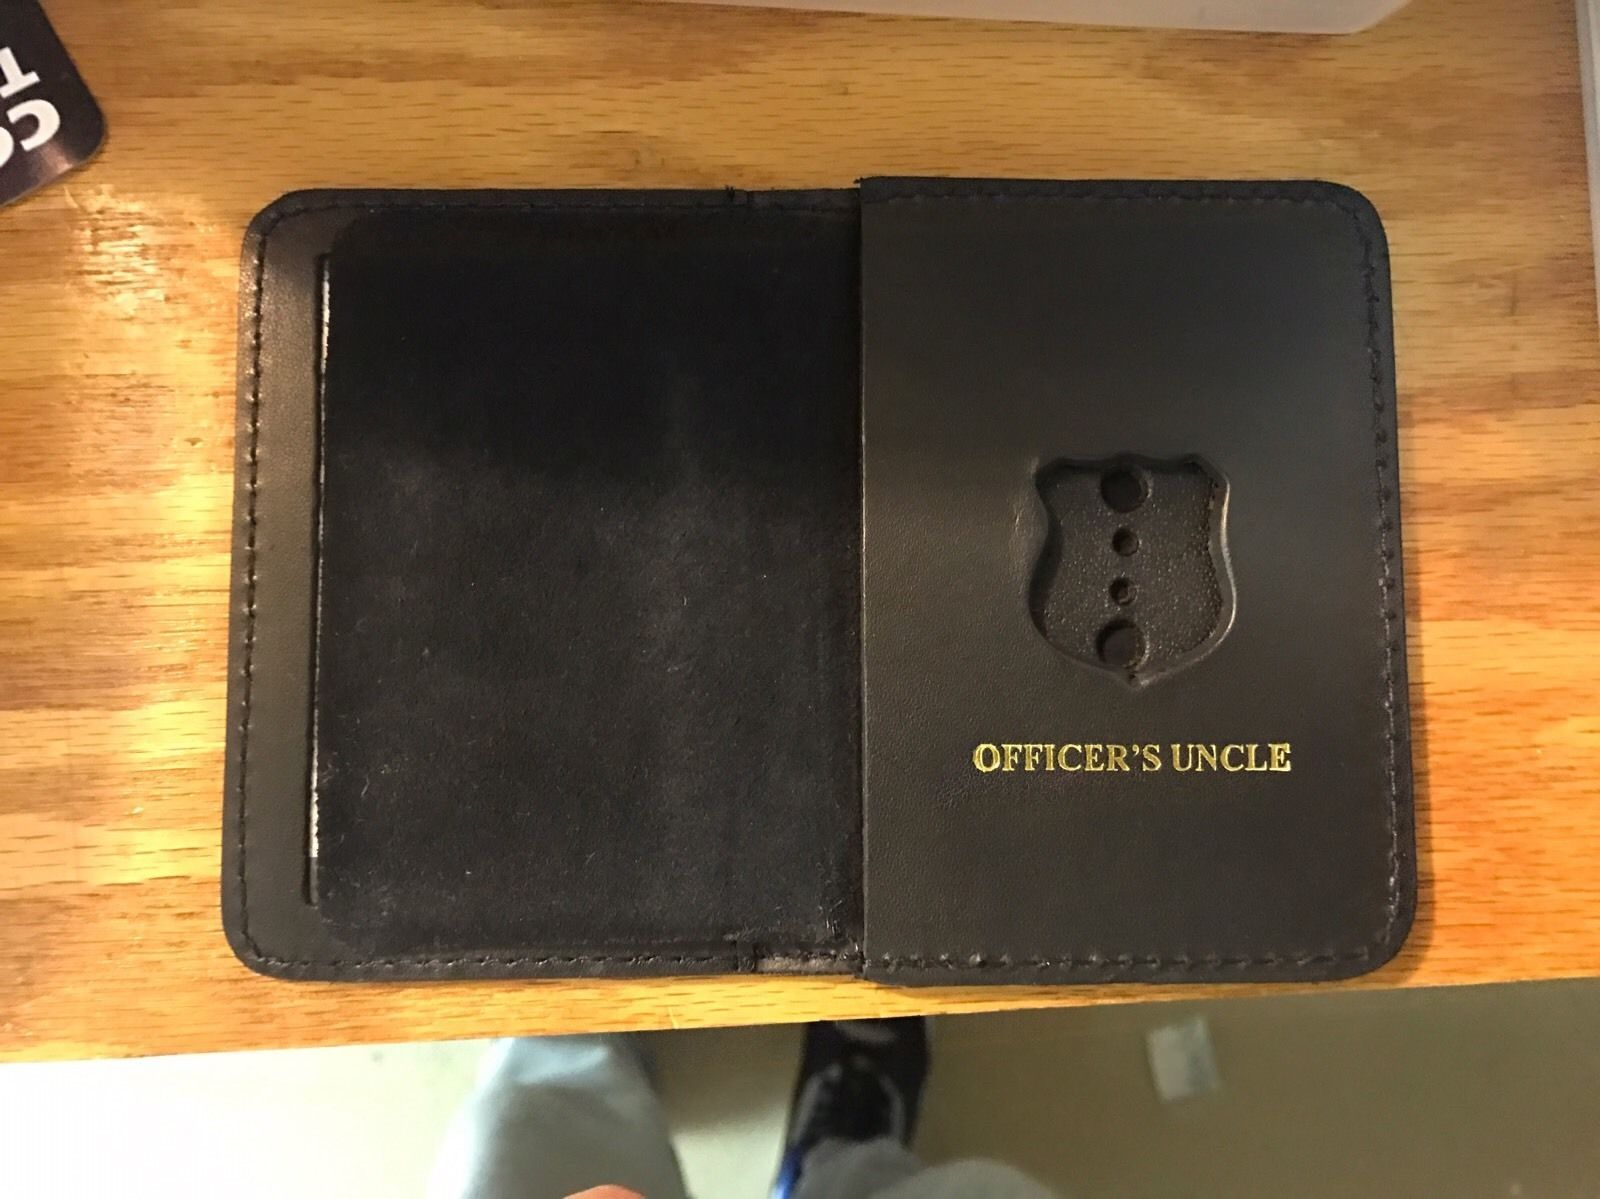 NYPD Police Officer Mini Badge Officer Uncle  bi-fold Wallet - 2016 NYPD PBA